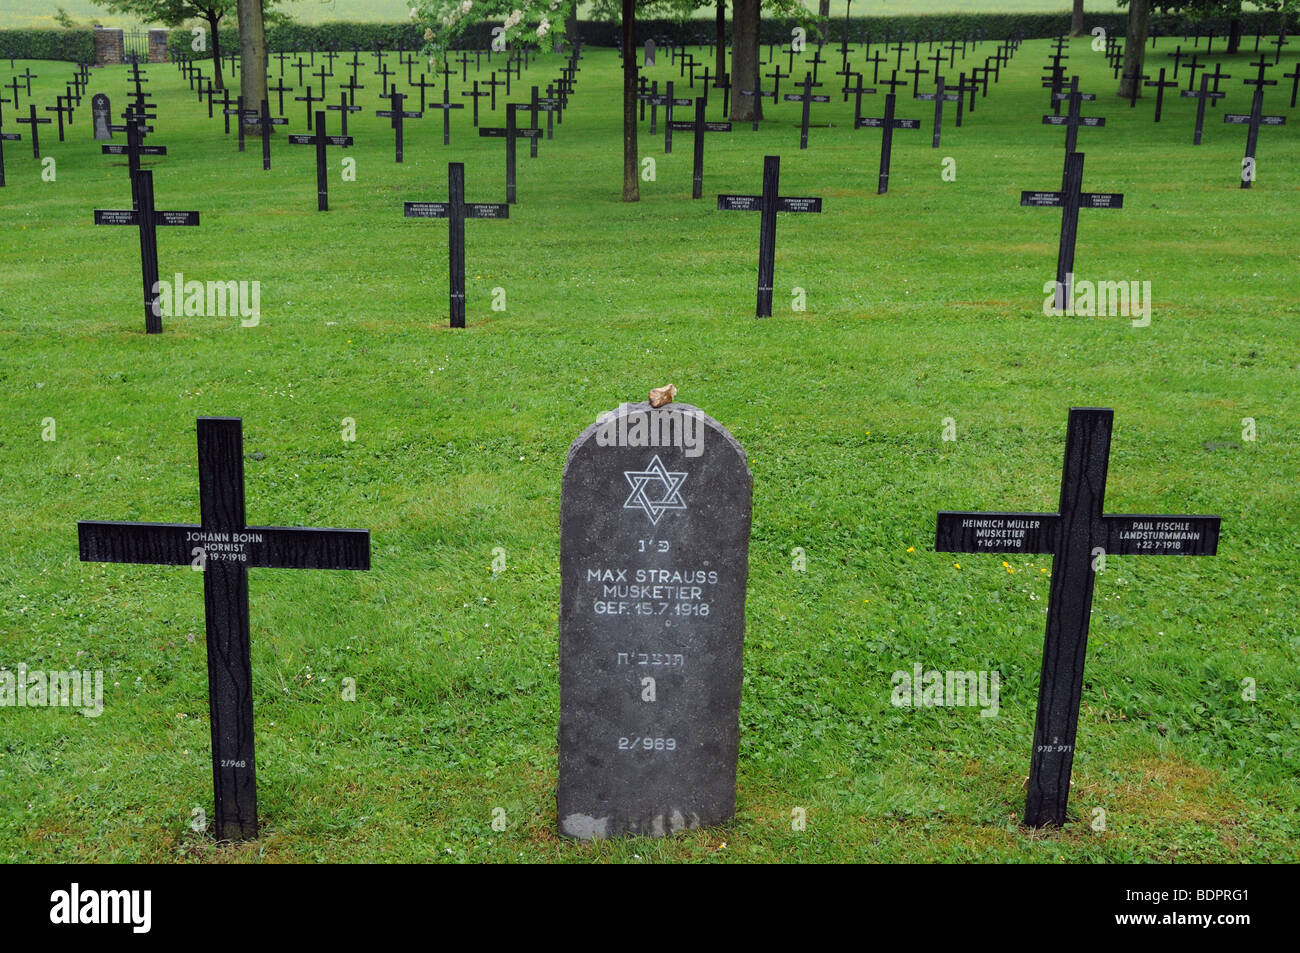 german-war-graves-at-fricourt-on-the-somme-BDPRG1.jpg